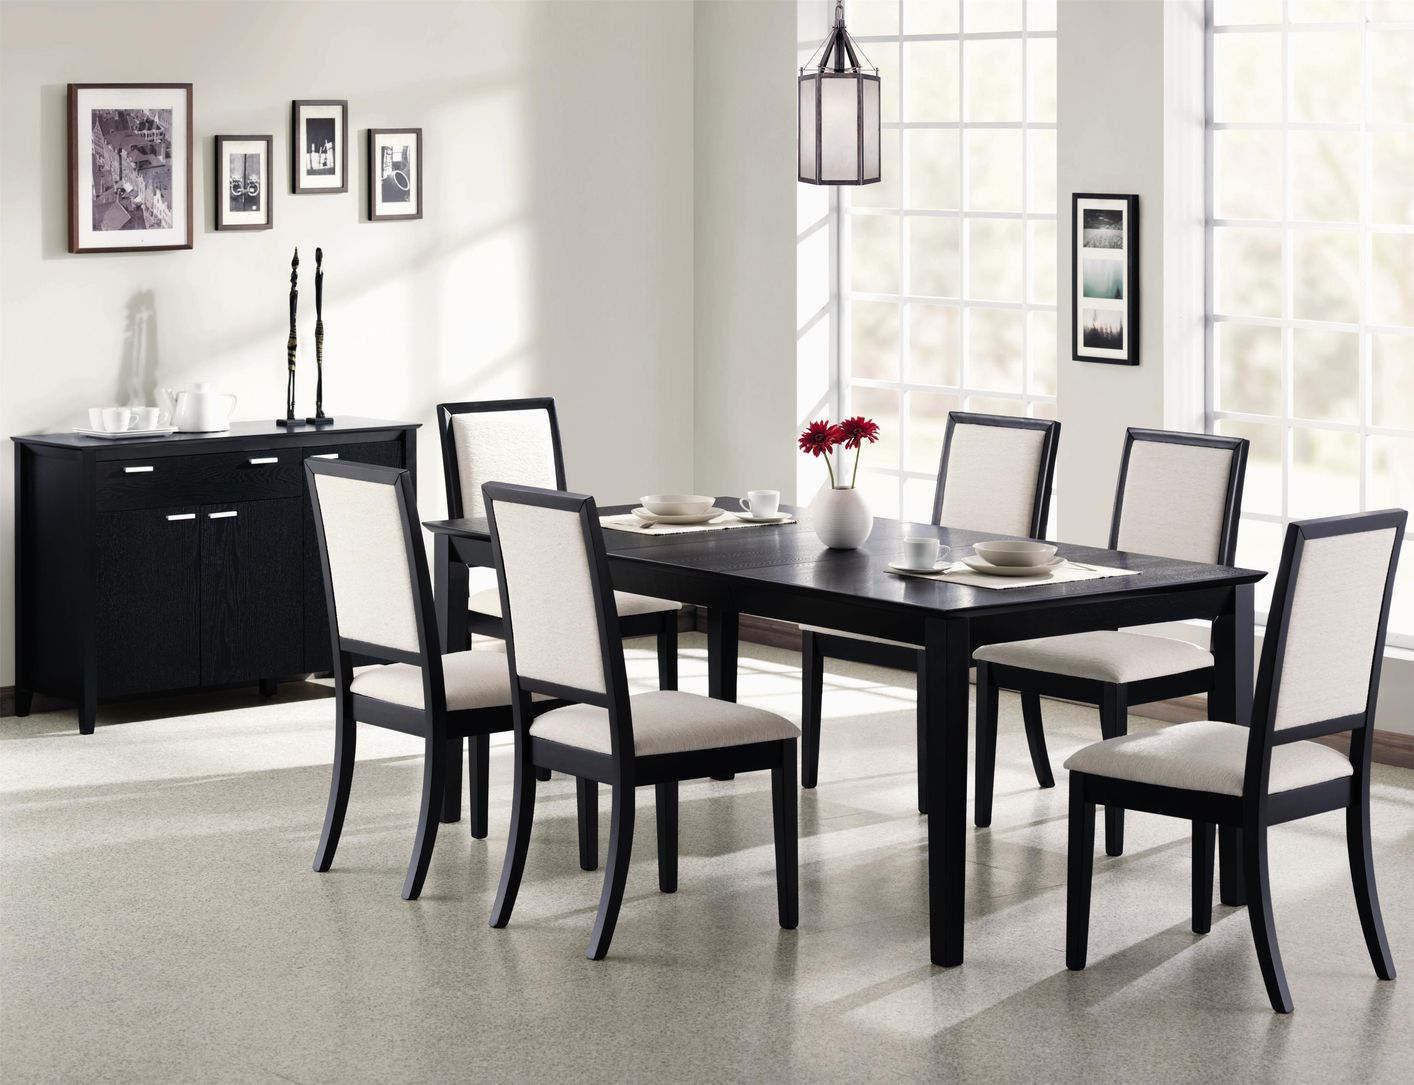 Impressive black dining table and chairs black and wood dining table chairs best room se rahjblr